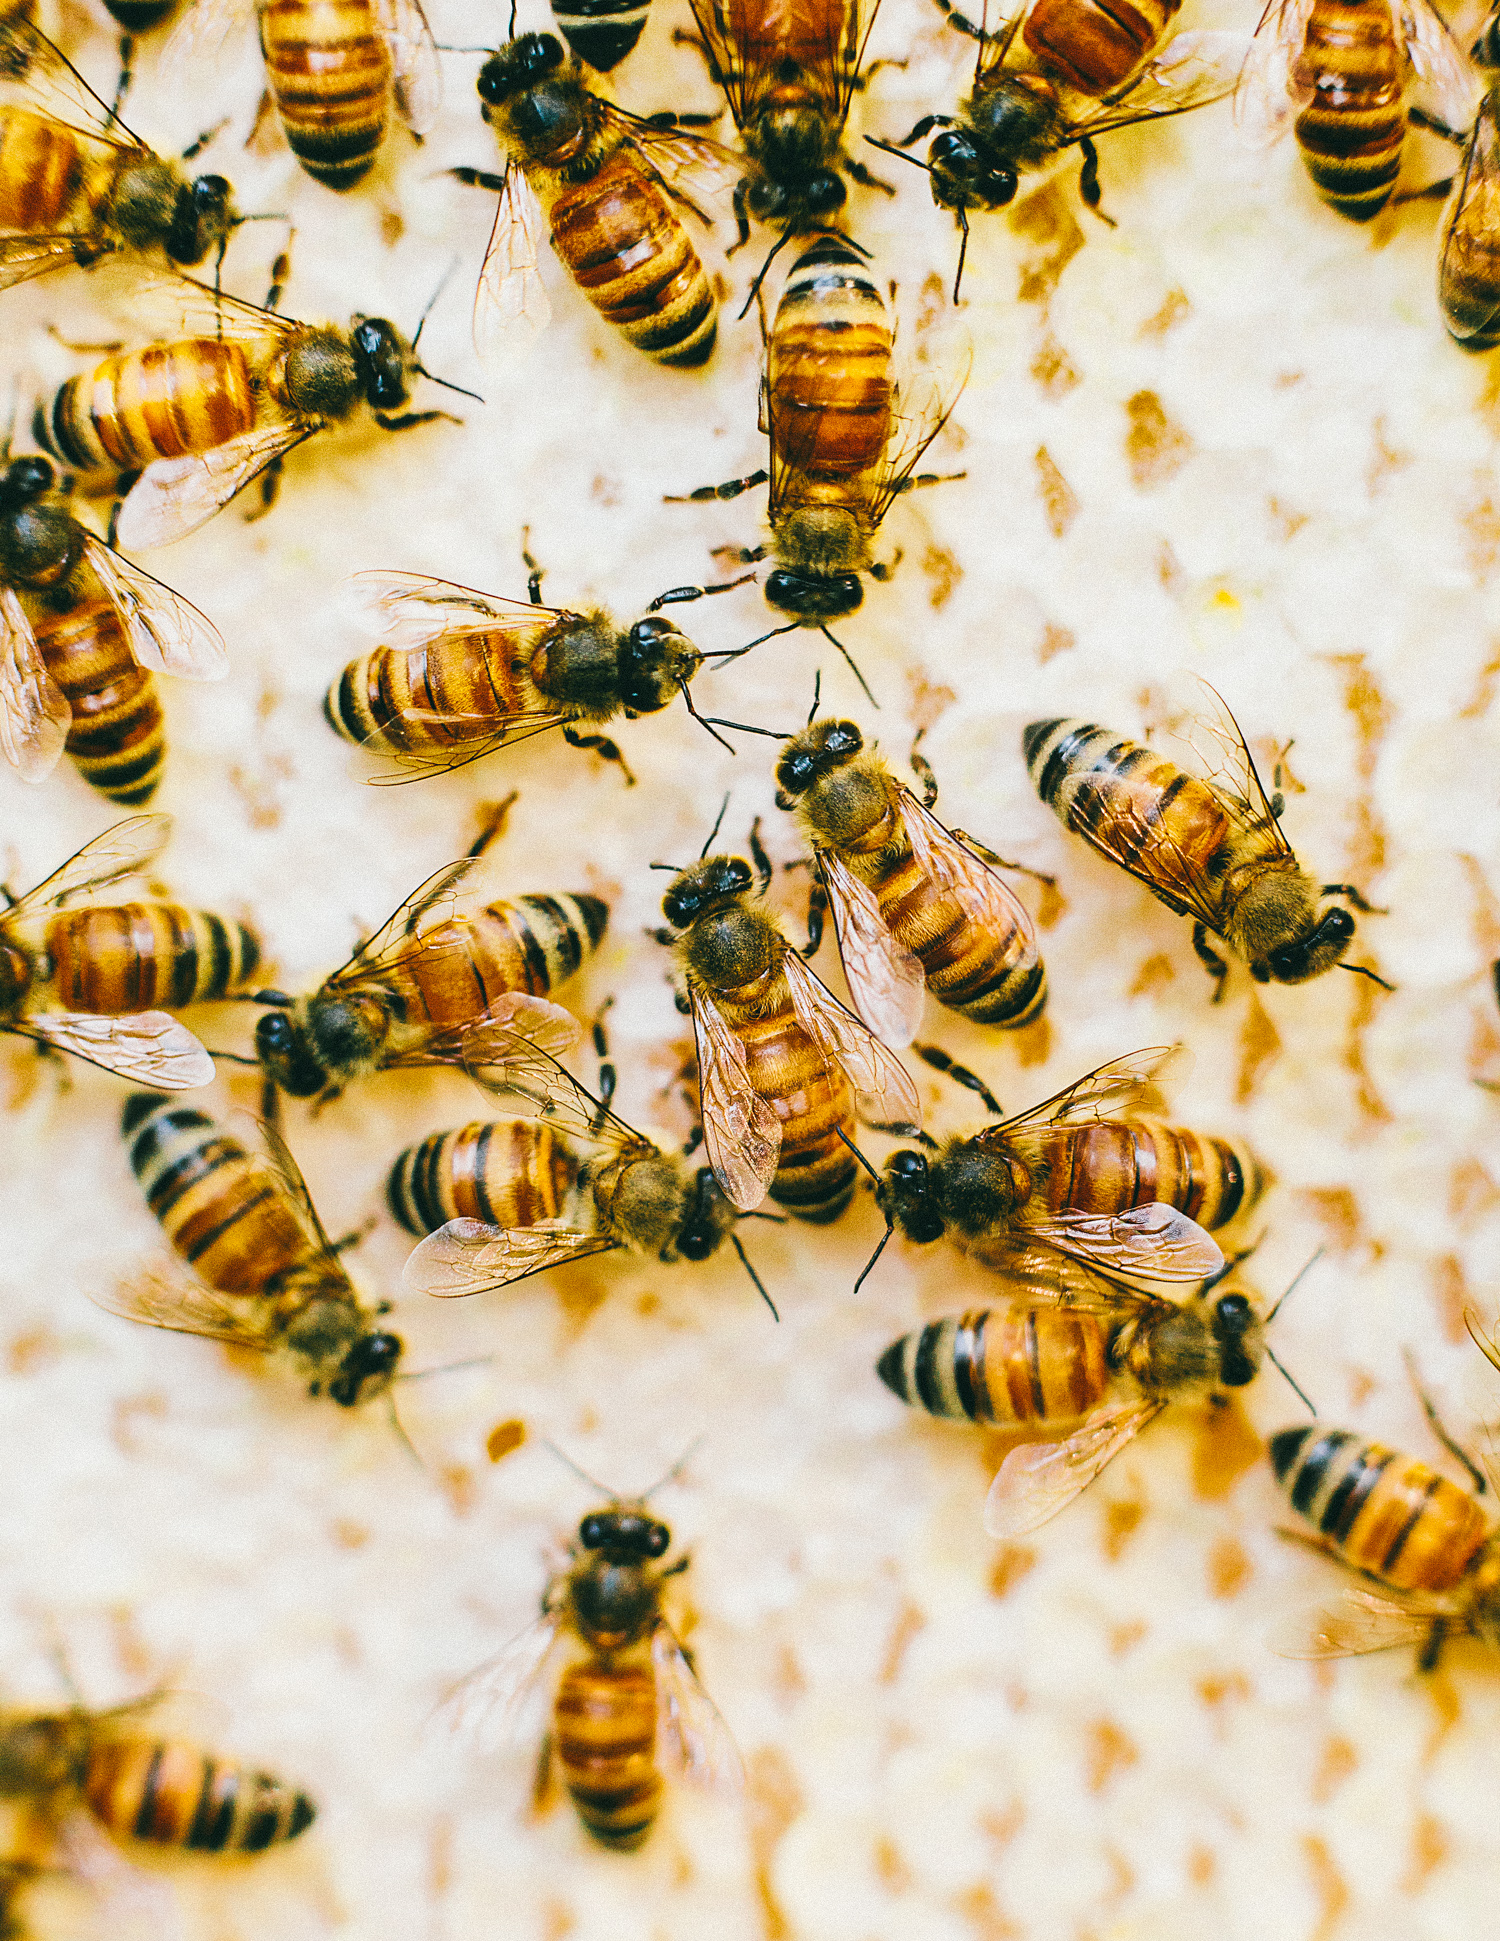 Bees photographed by Adam DeTour